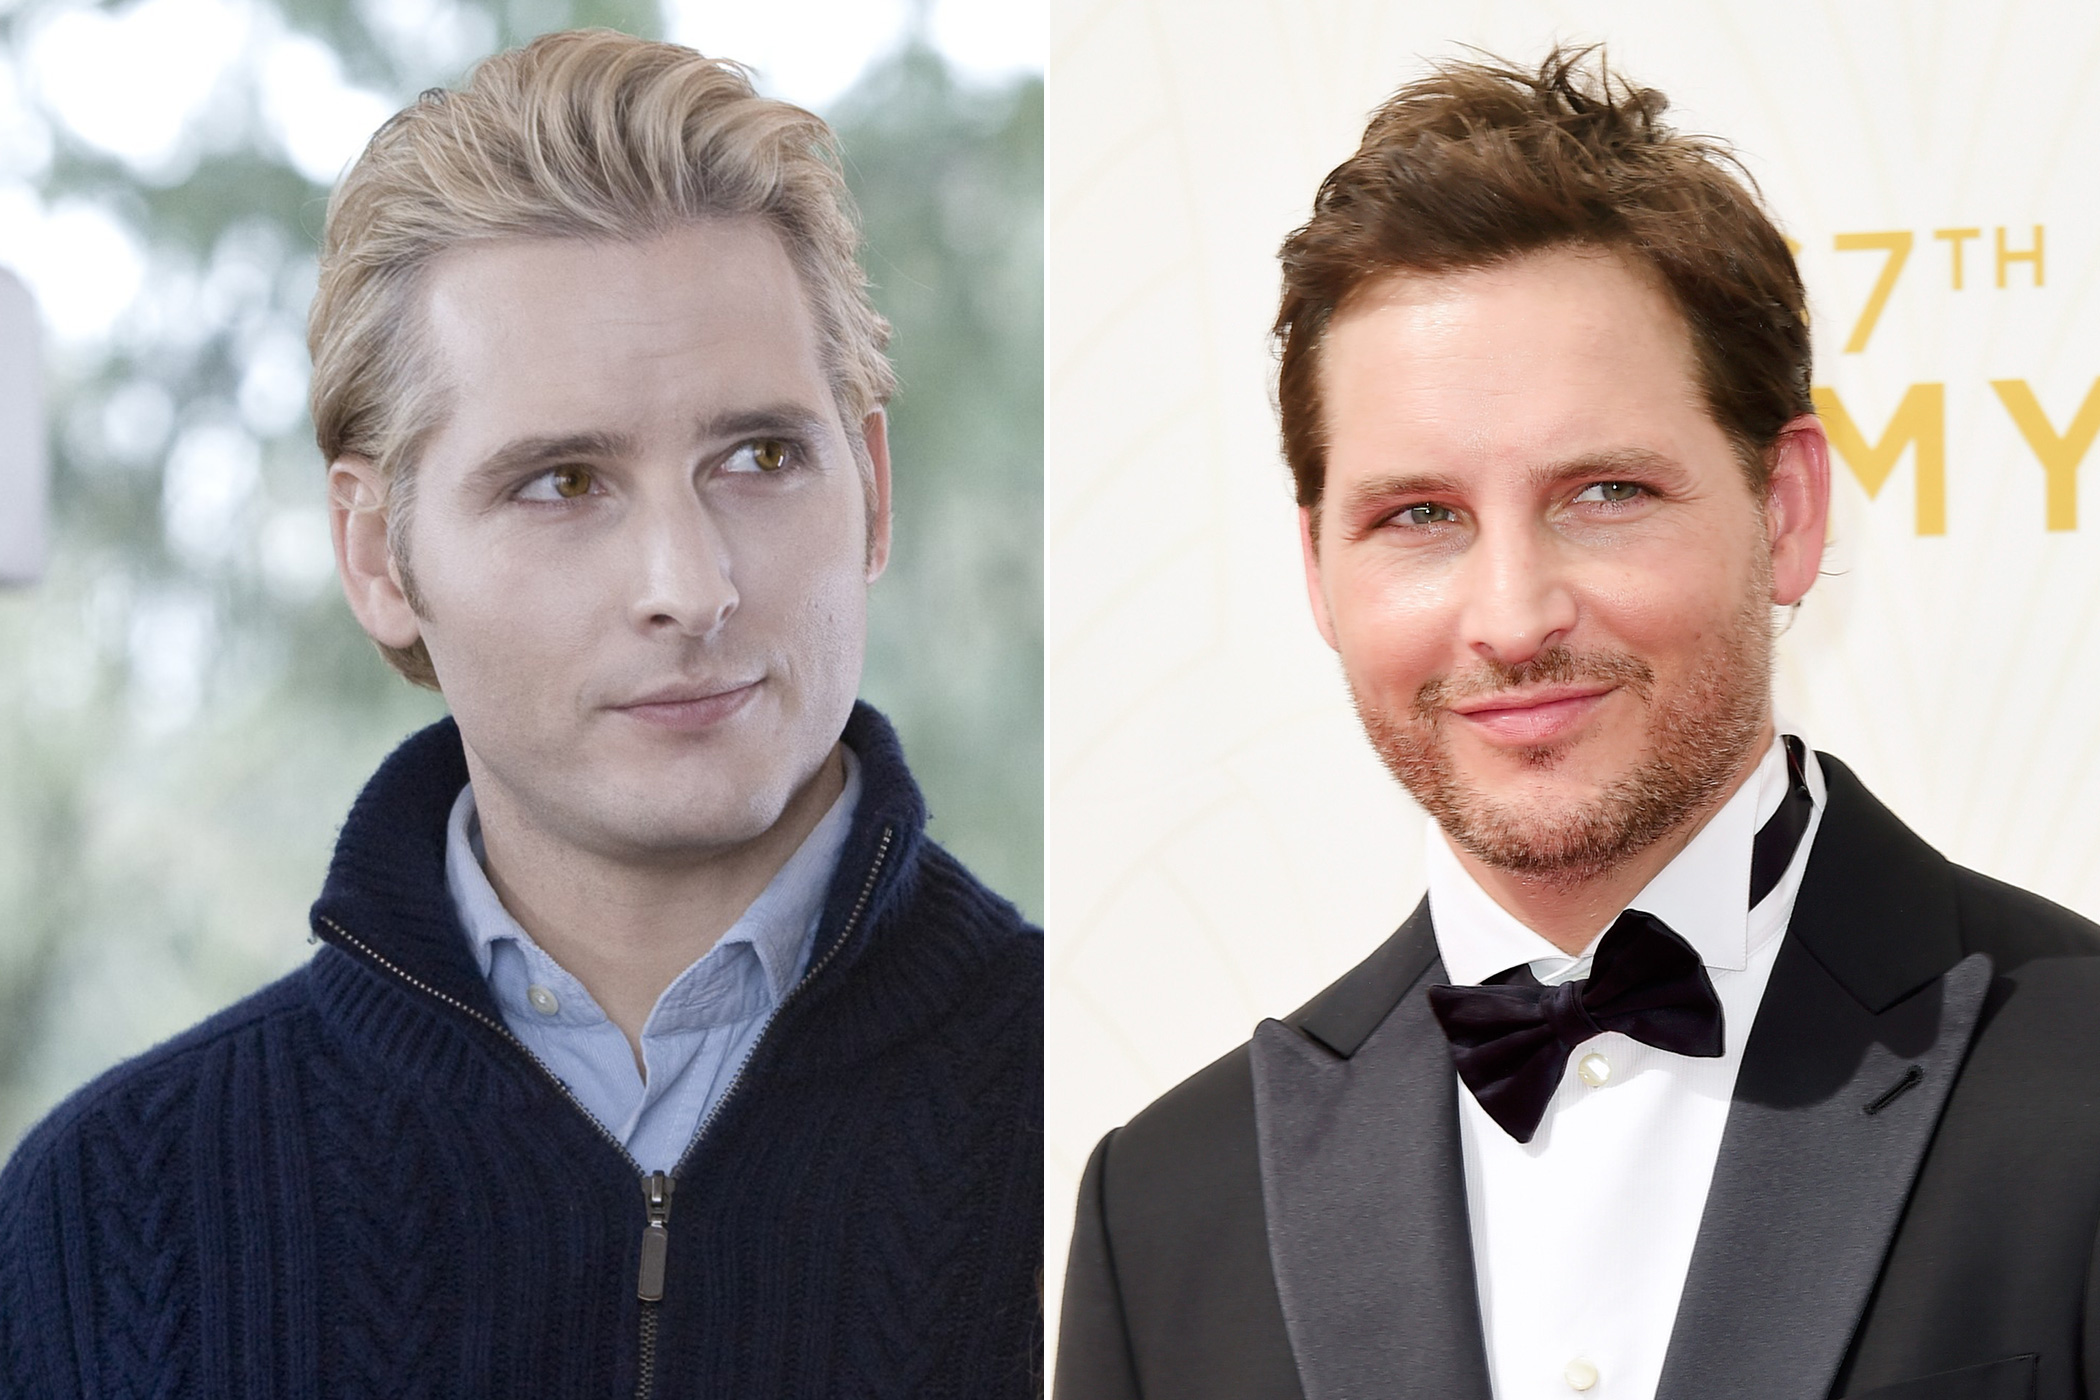 Left: Peter Facinelli as Dr. Carlisle Cullen in Twilight, 2008; Right: in 2015